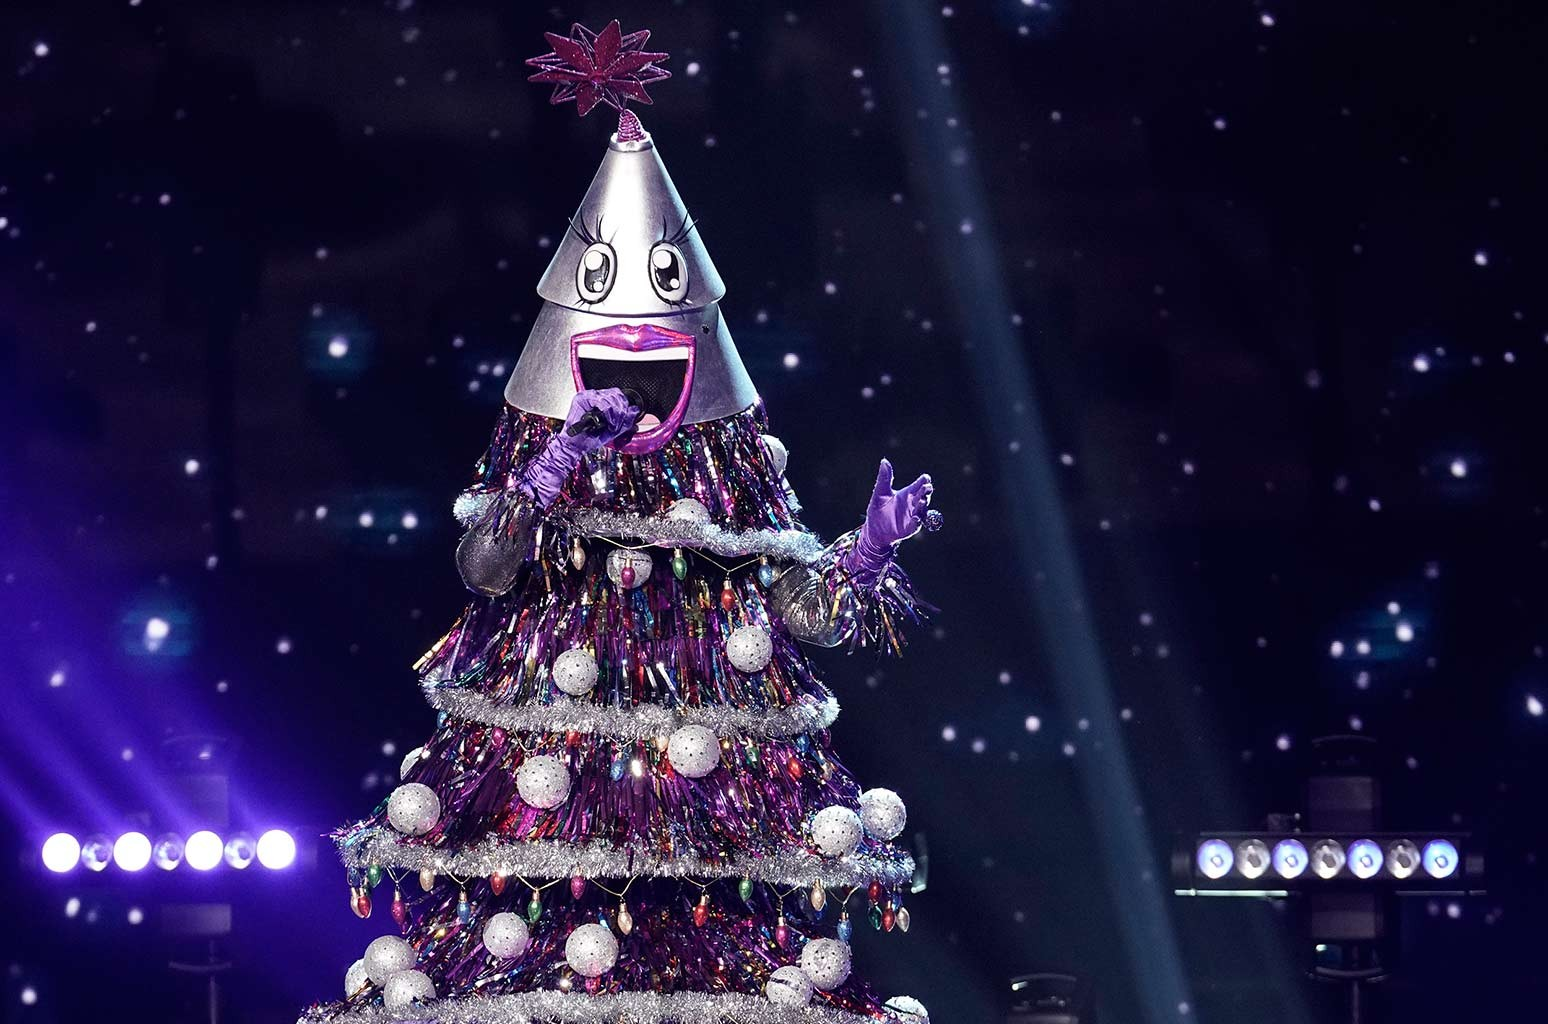 The Tree, The Masked Singer